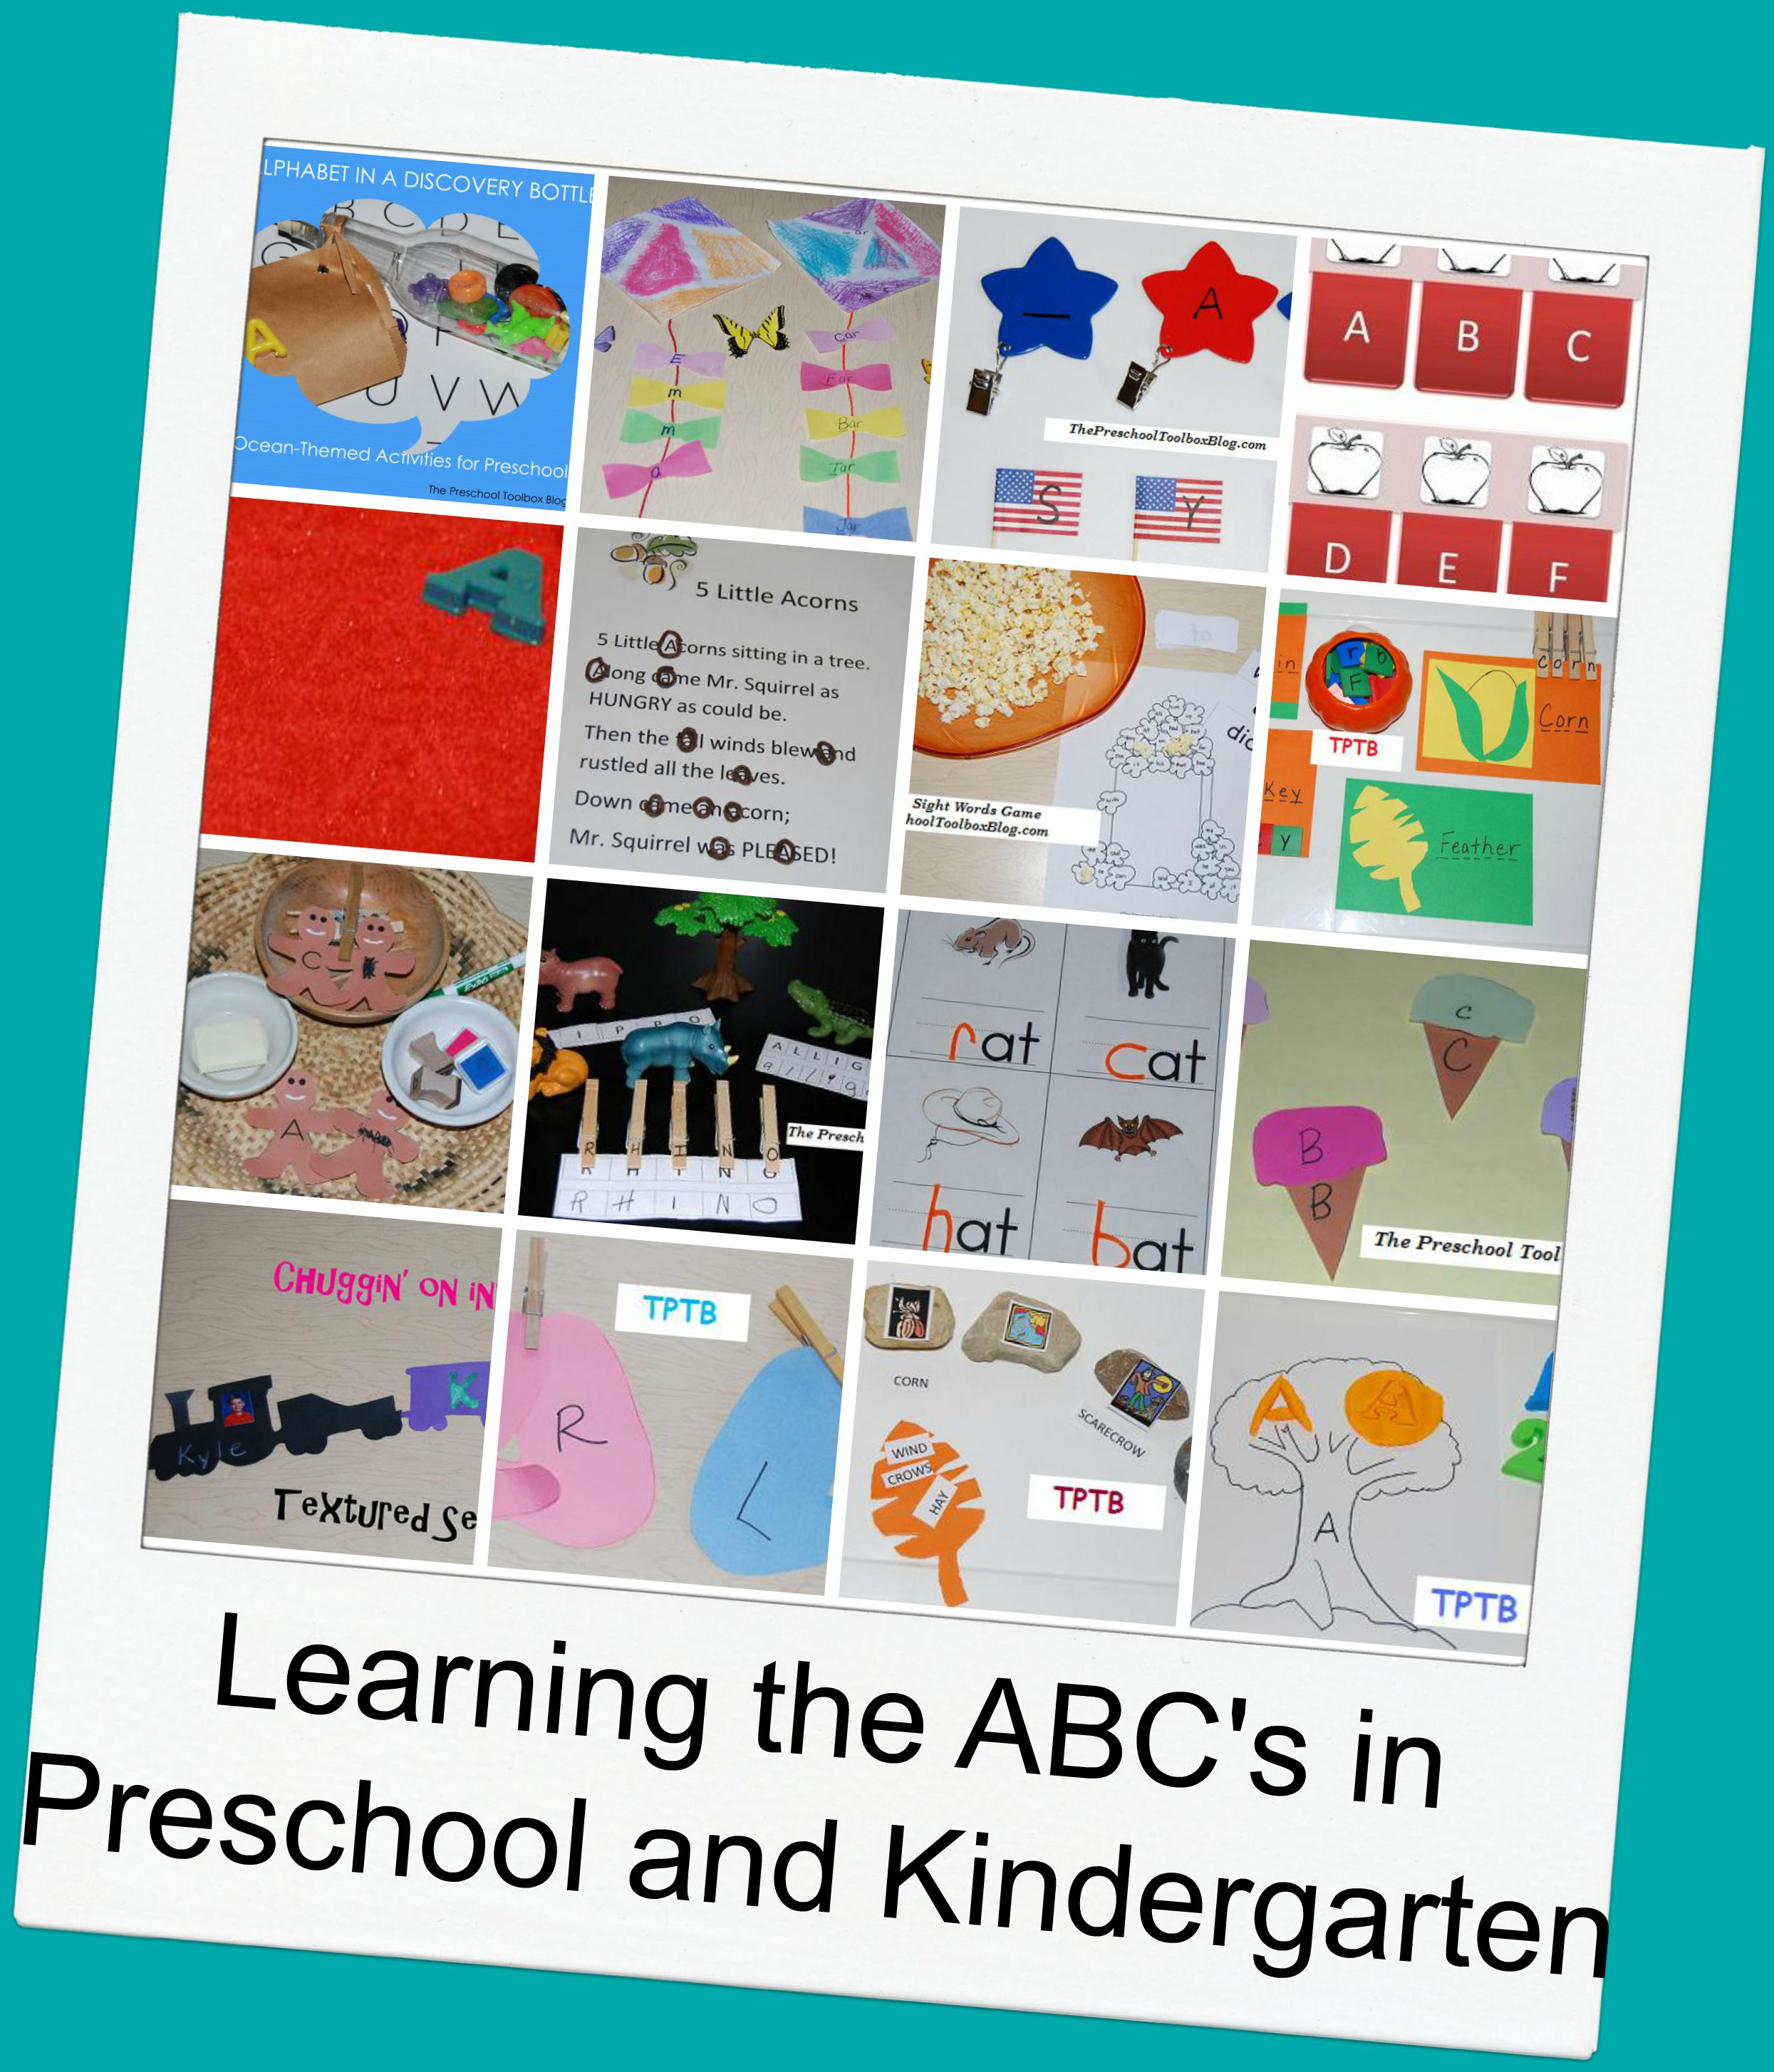 Playful Learning For Teaching The ABCs In Preschool And Kindergarten